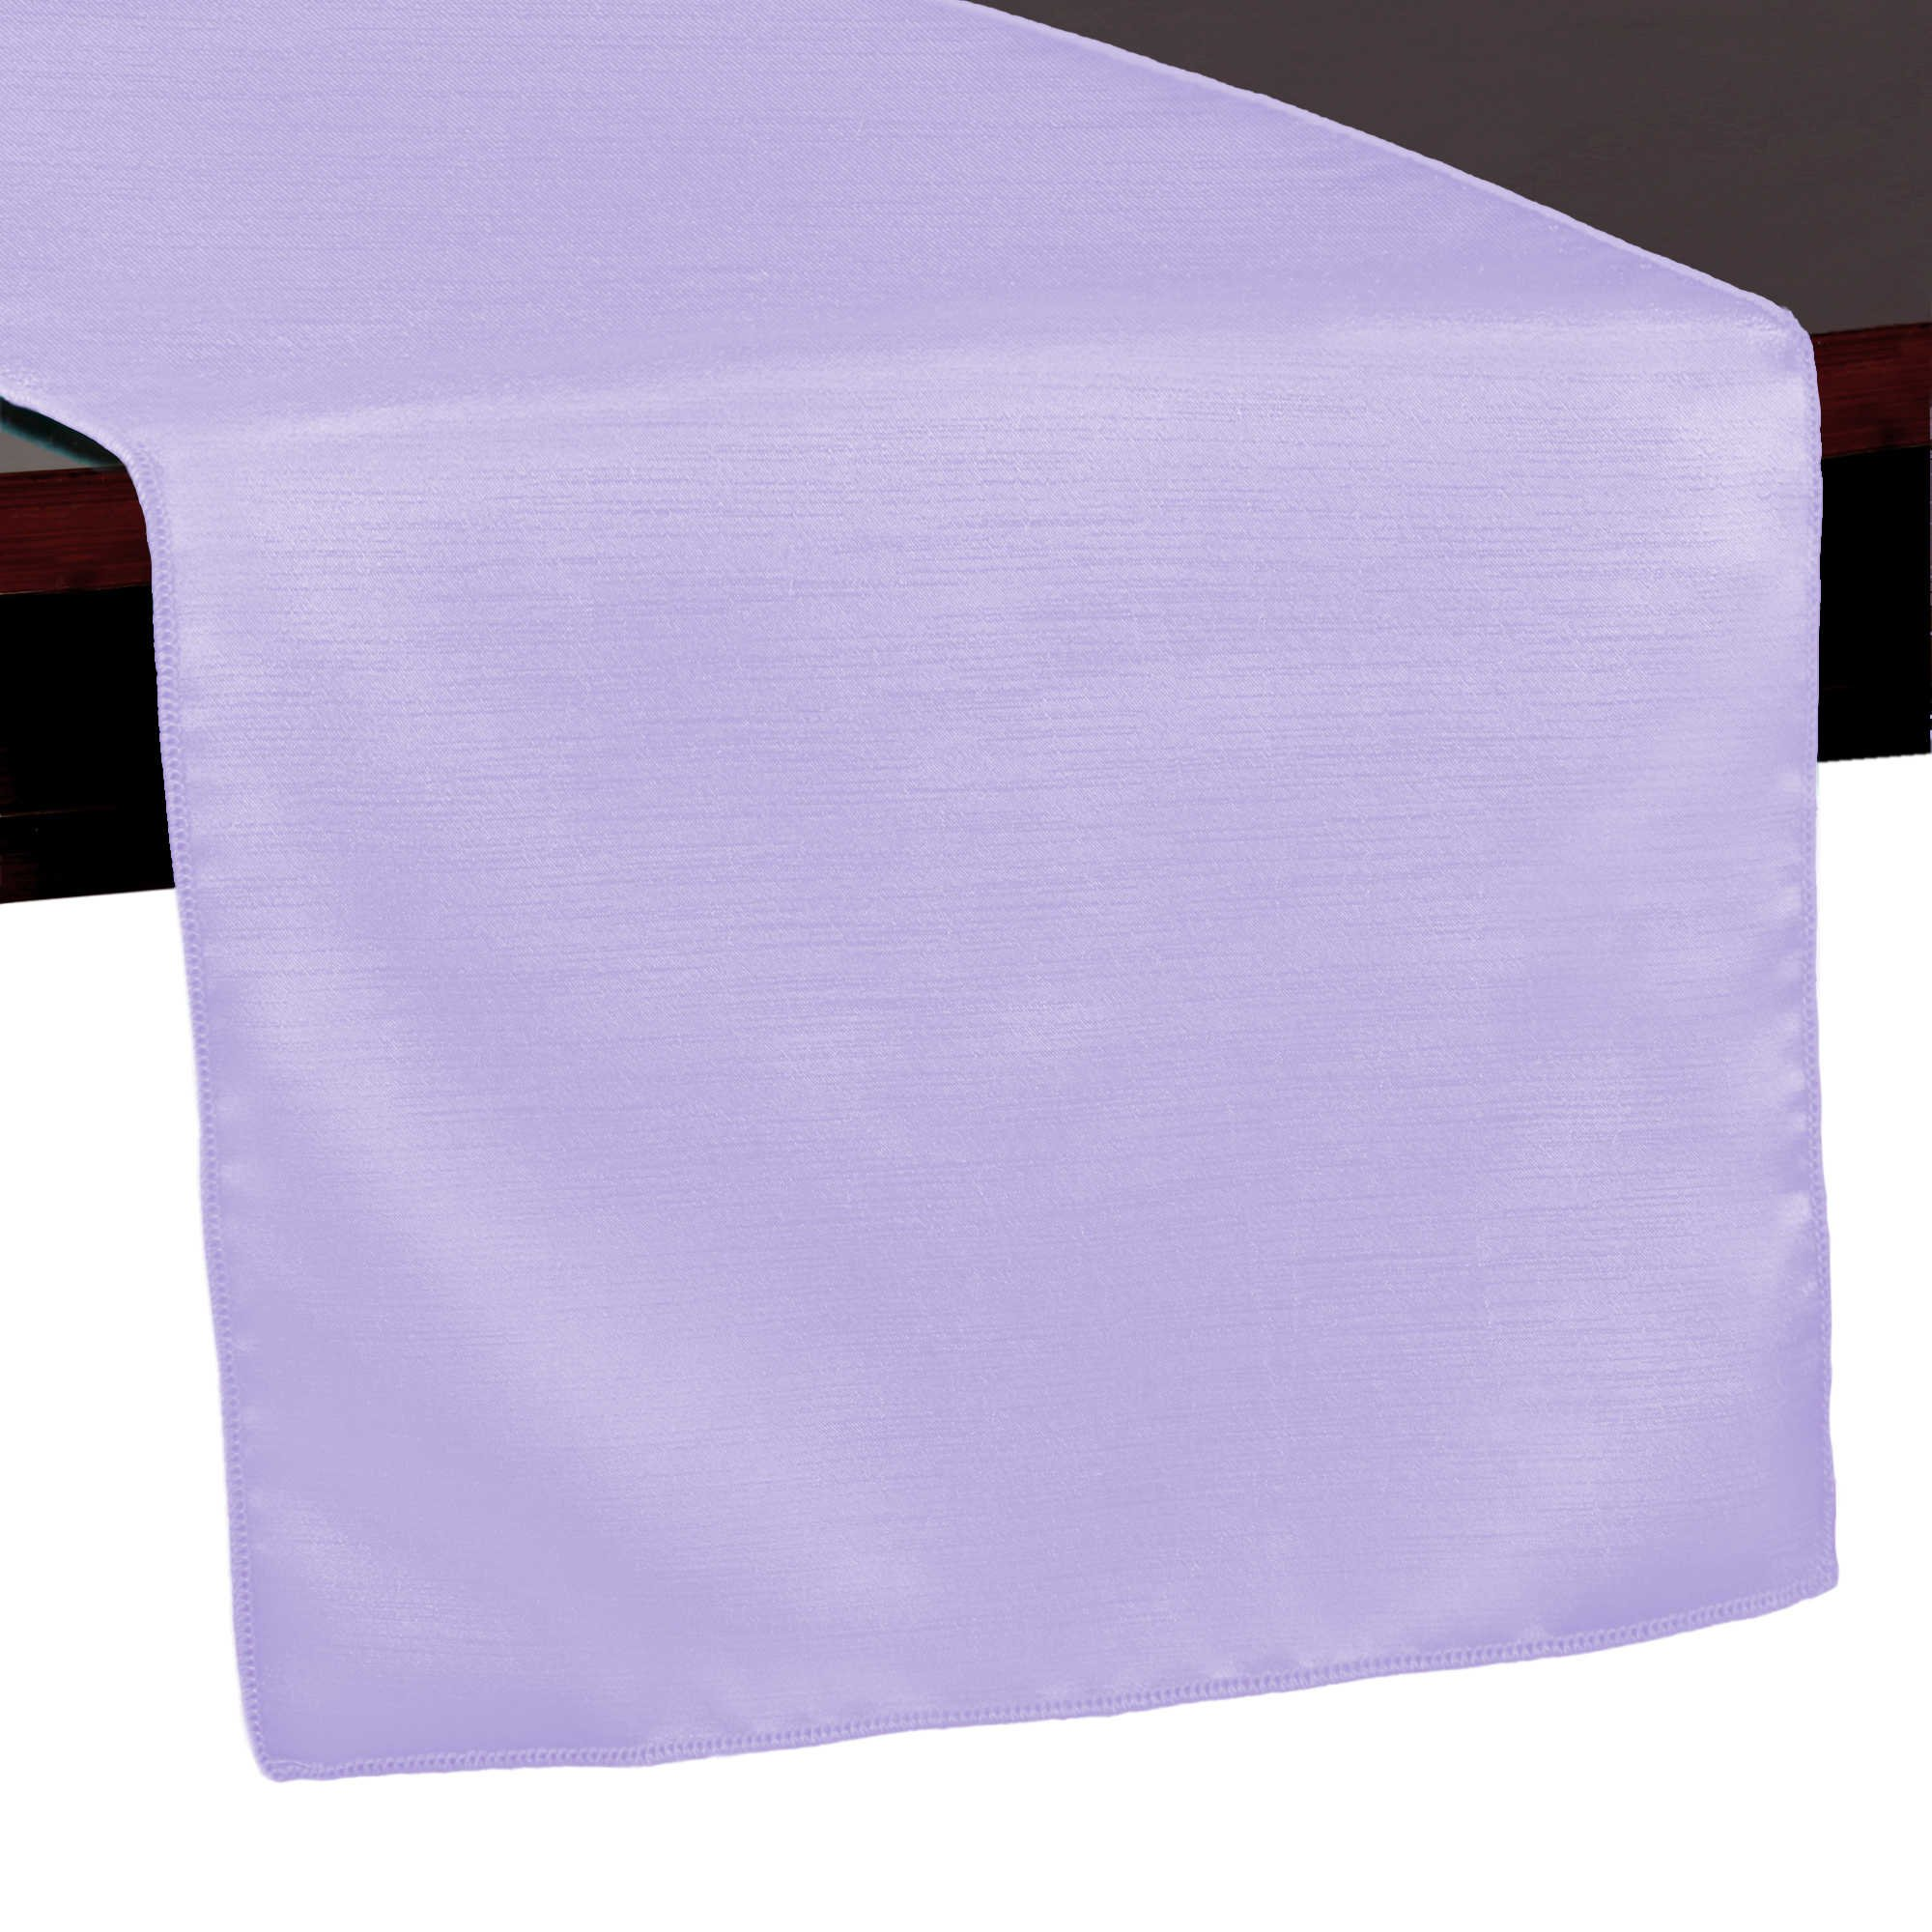 Ultimate Textile (10 Pack) Reversible Shantung Satin - Majestic 14 x 108-Inch Table Runner - for Weddings, Home Parties and Special Event use, Lilac